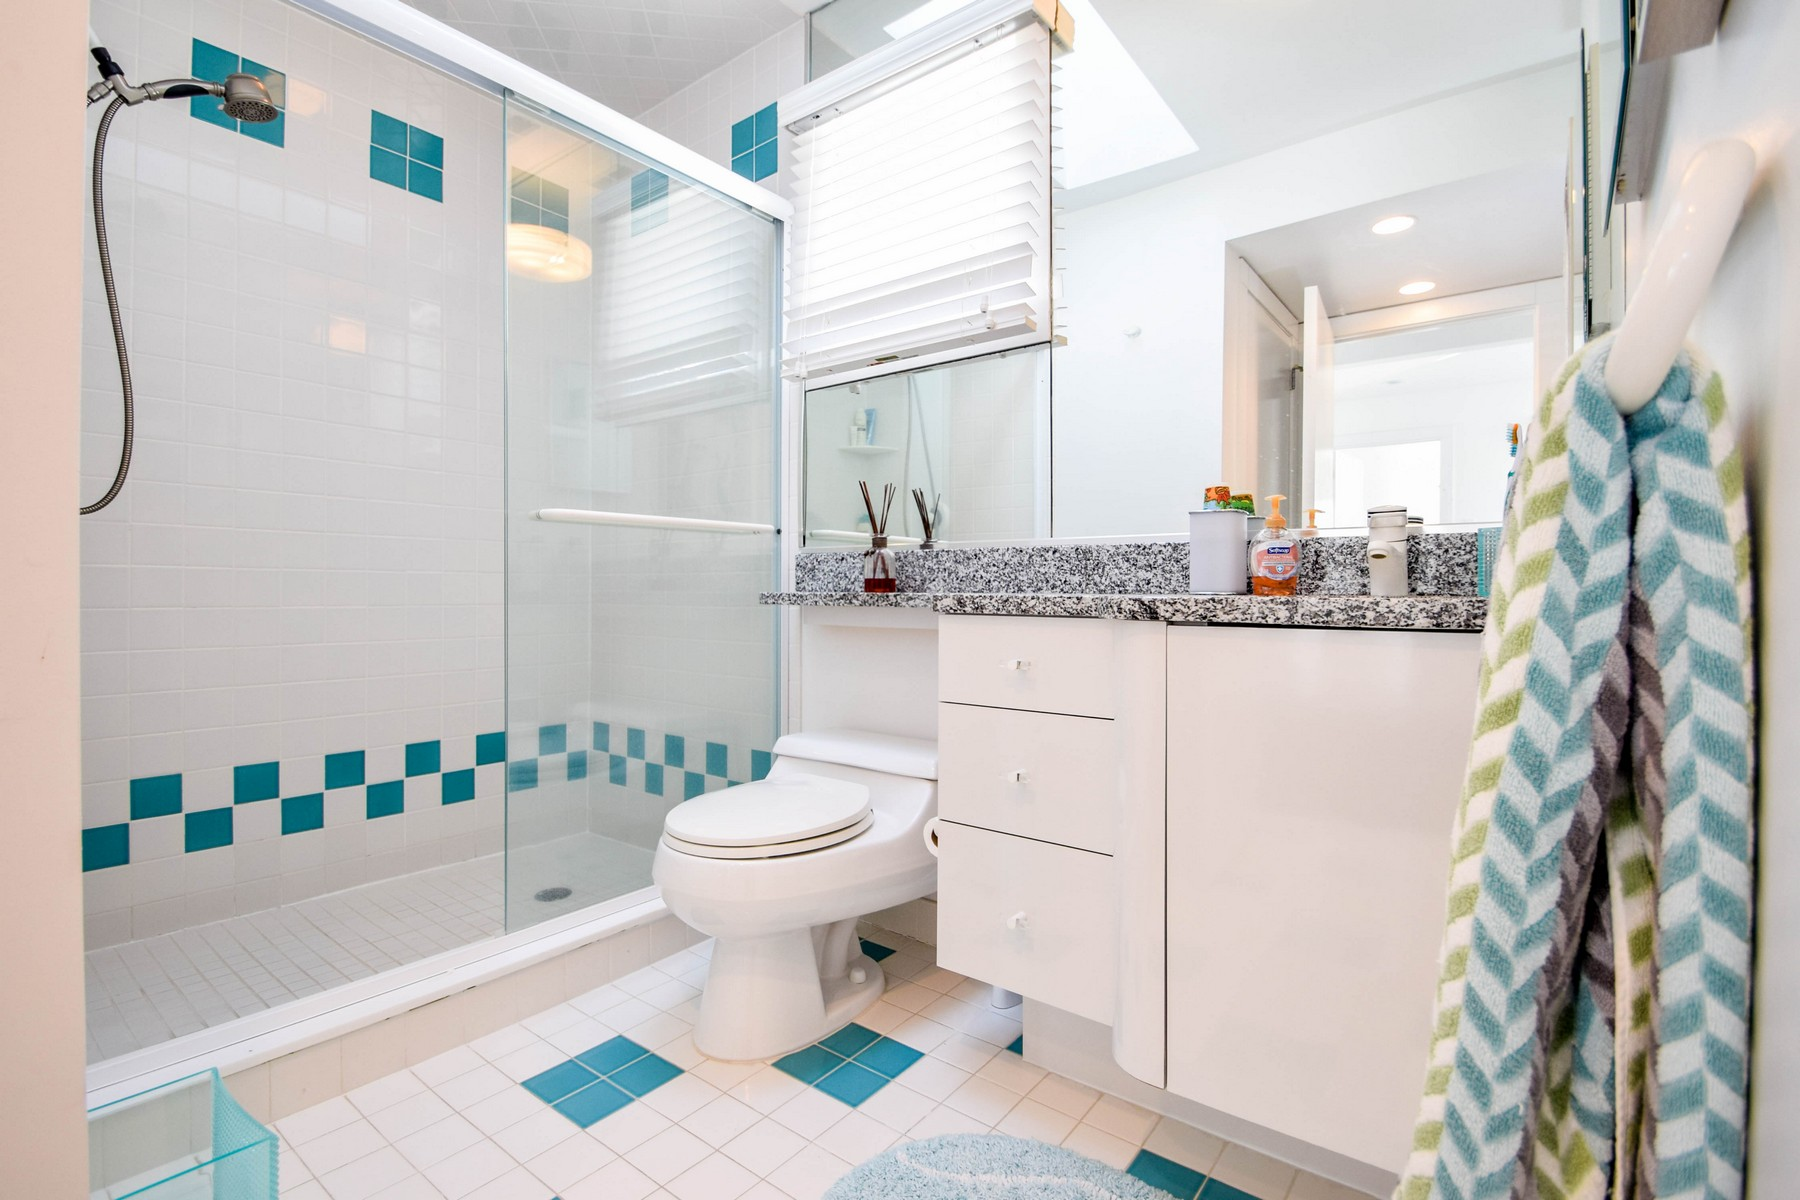 Additional photo for property listing at 108 S 27th Avenue 108 S 27th Avenue Longport, New Jersey 08403 United States